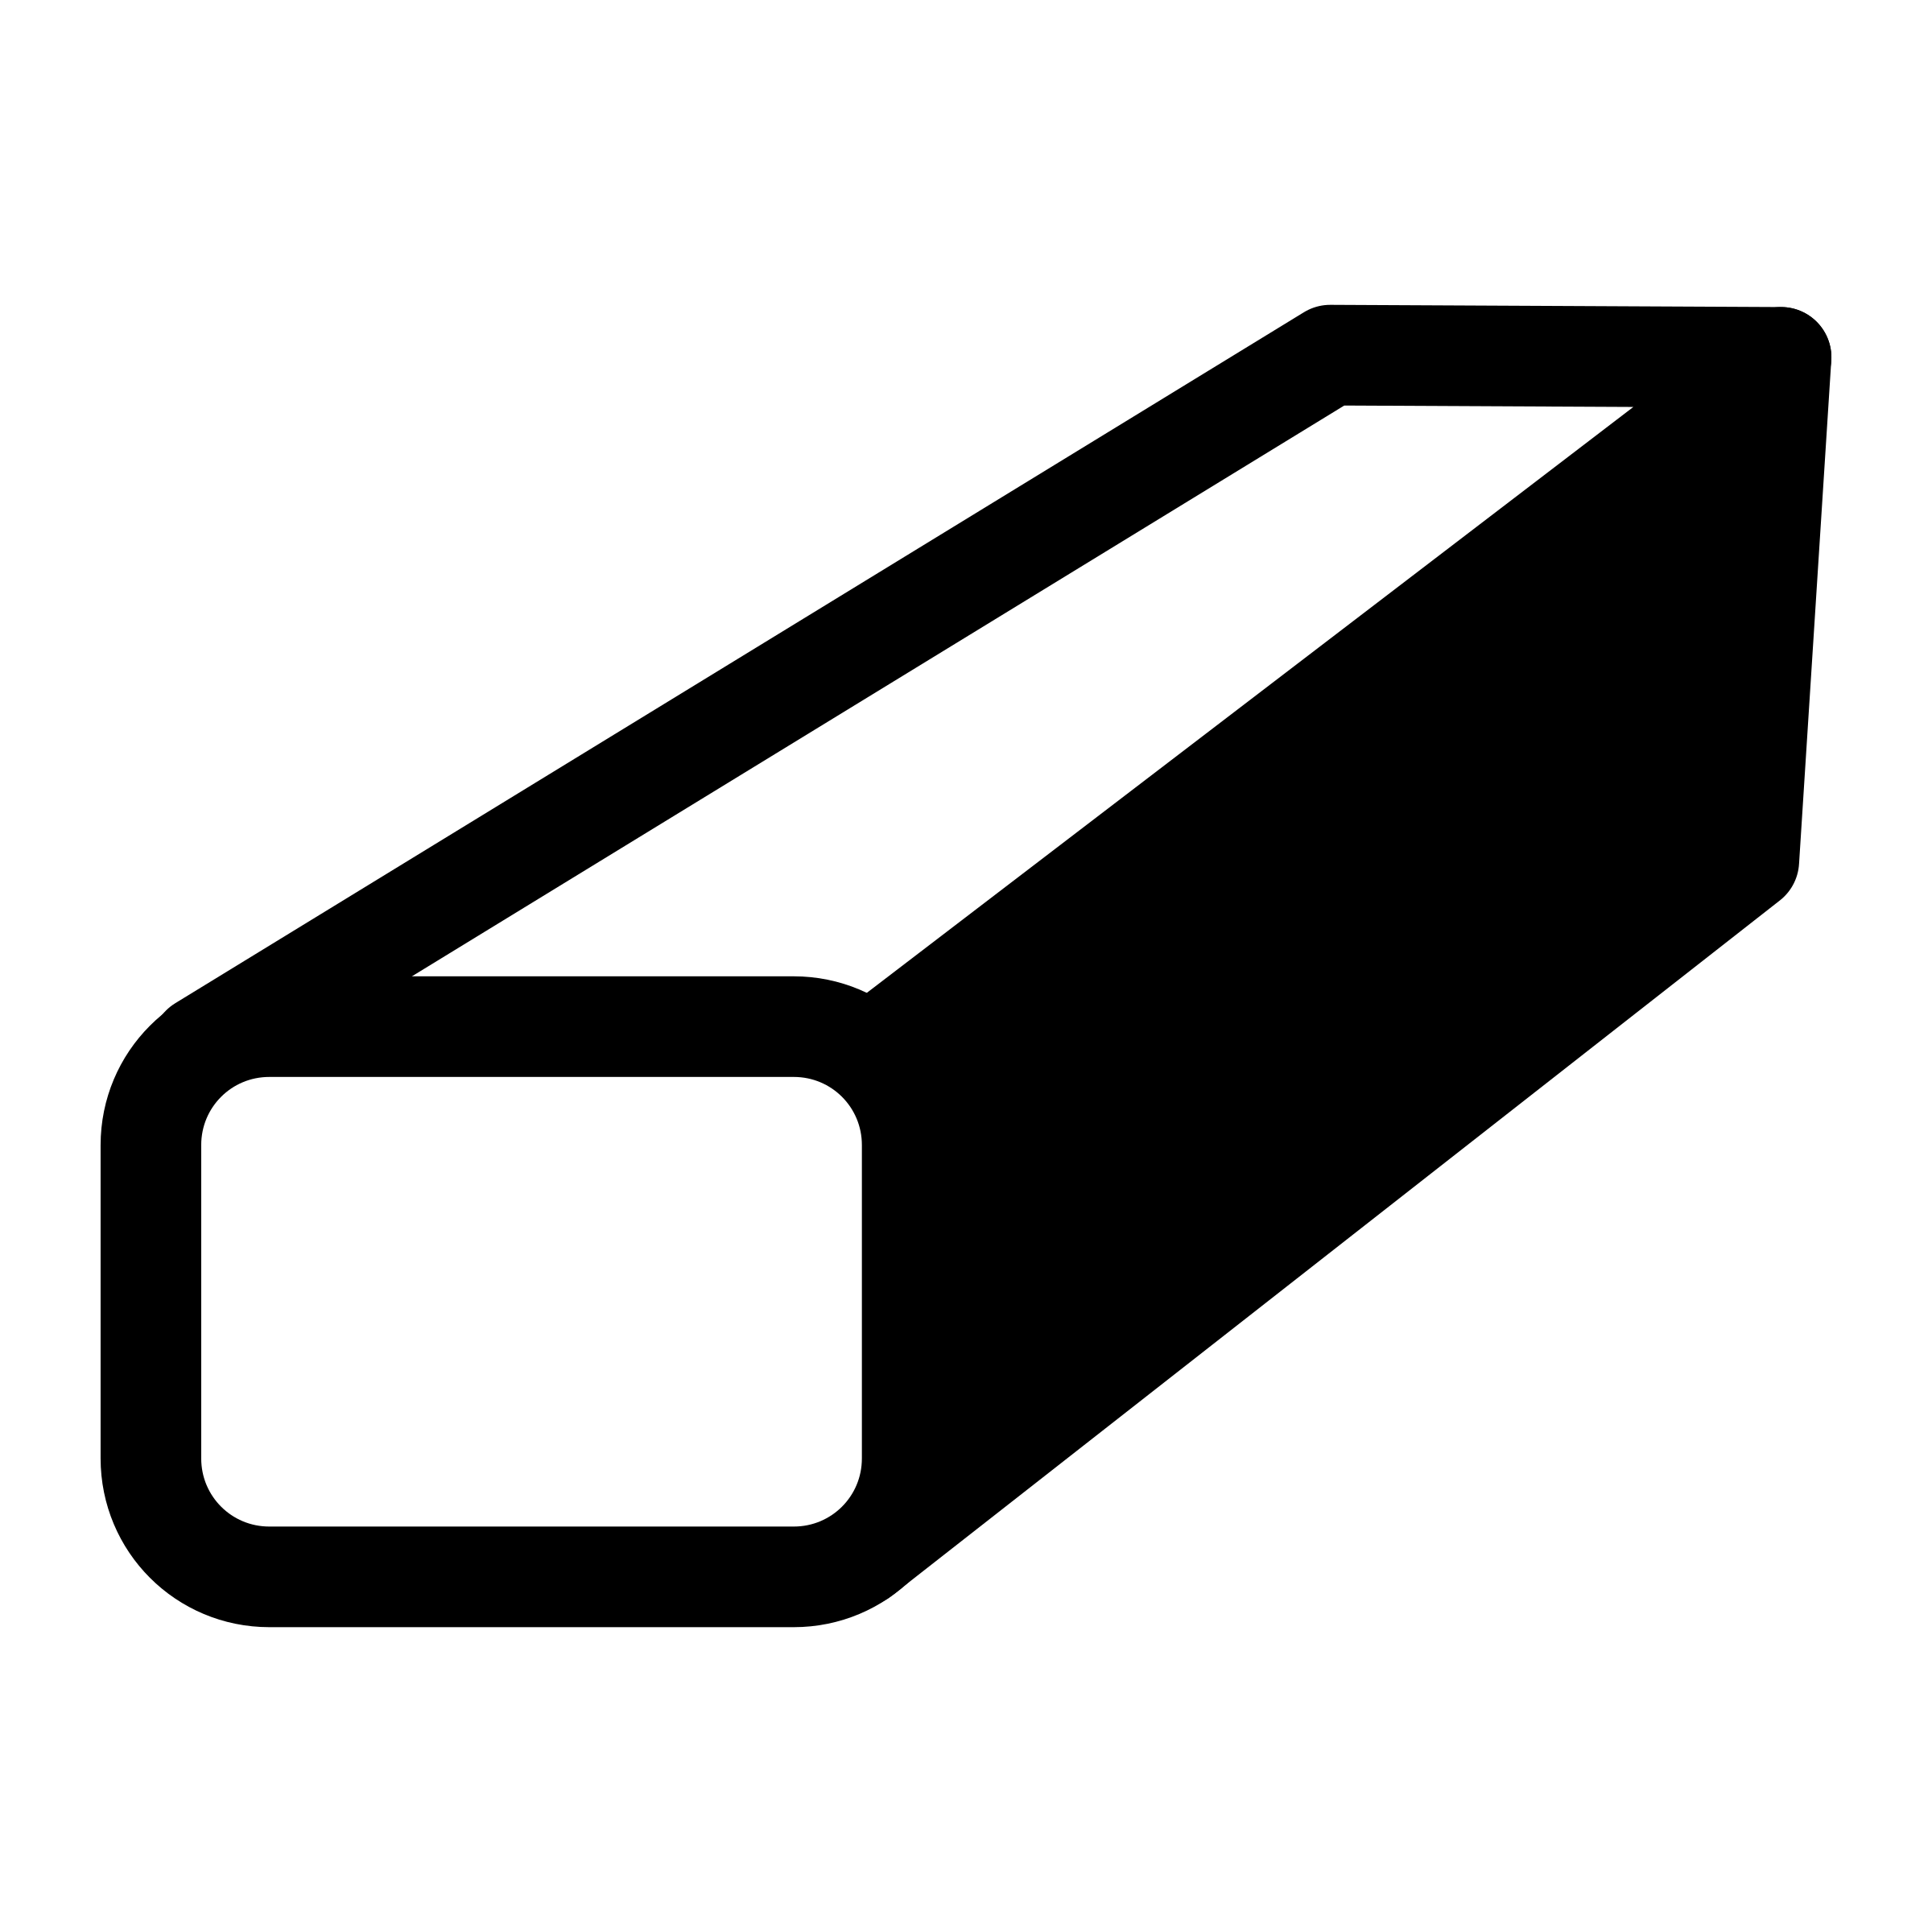 Eraser clipart red. Mono icons png free